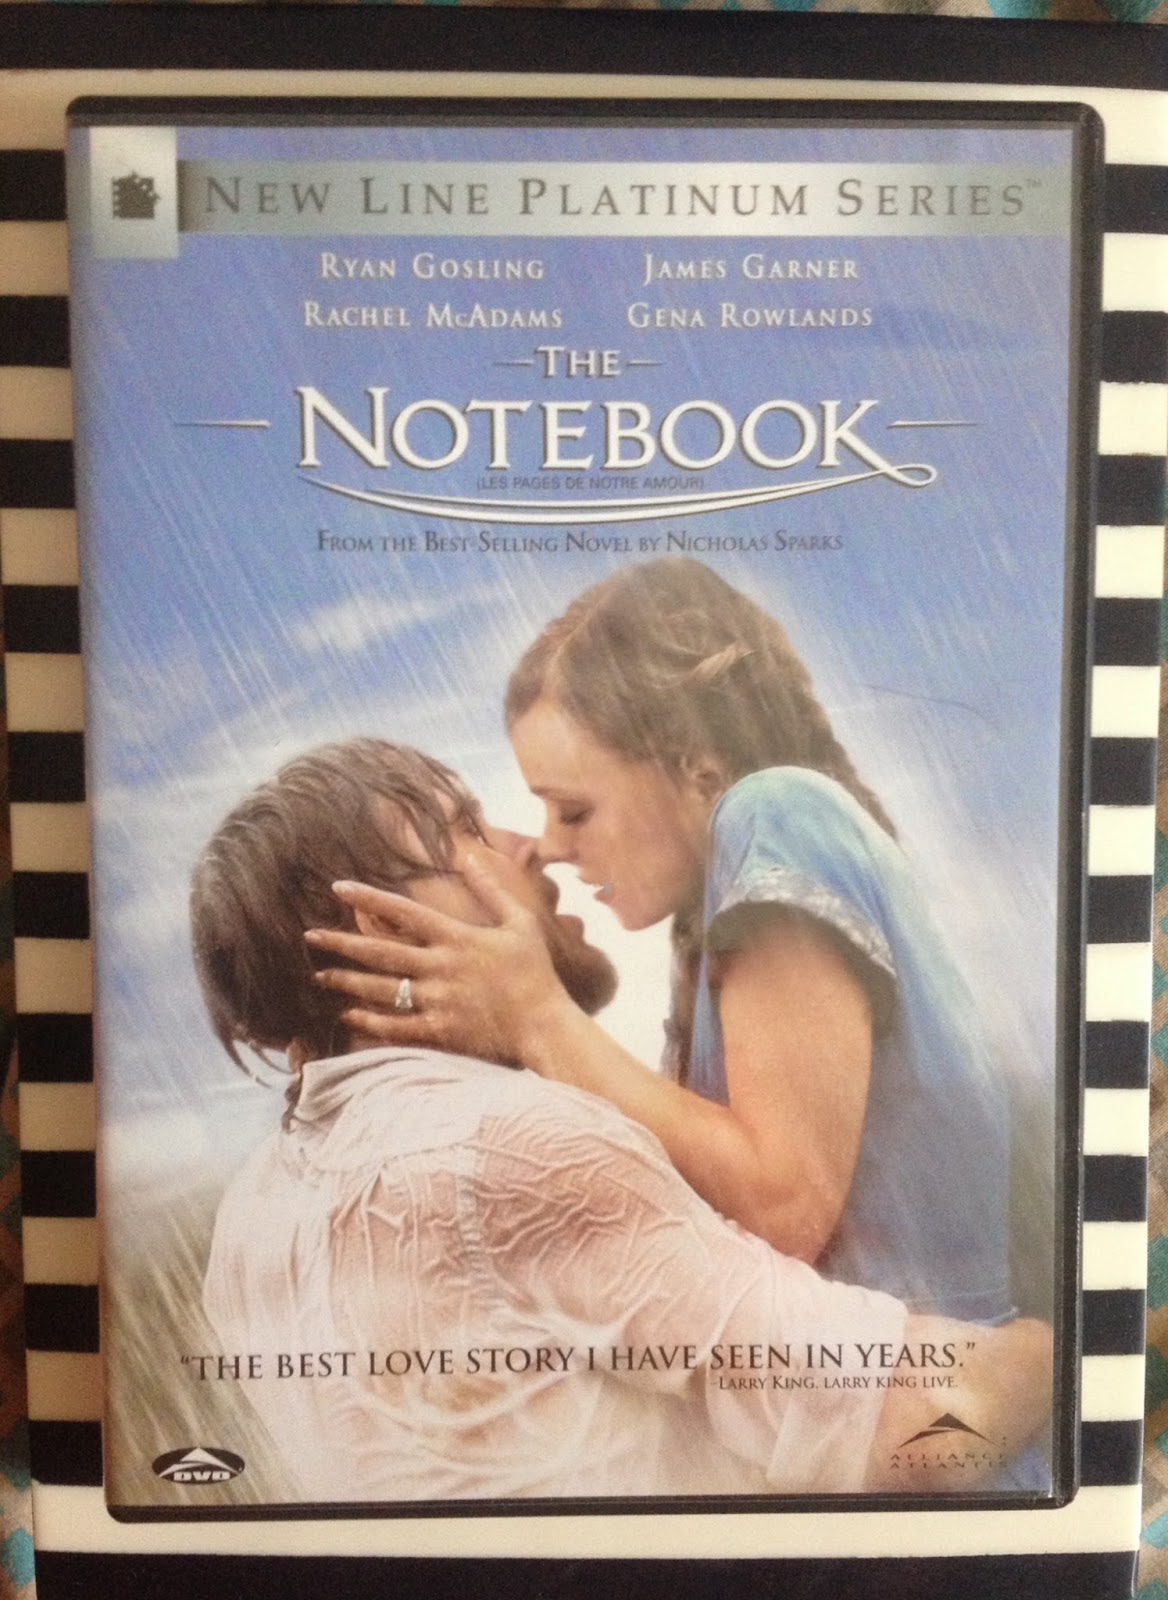 the khat chronicles you be wondering why i ve decided to review the notebook today considering 99% of the population has probably seen it 50 times